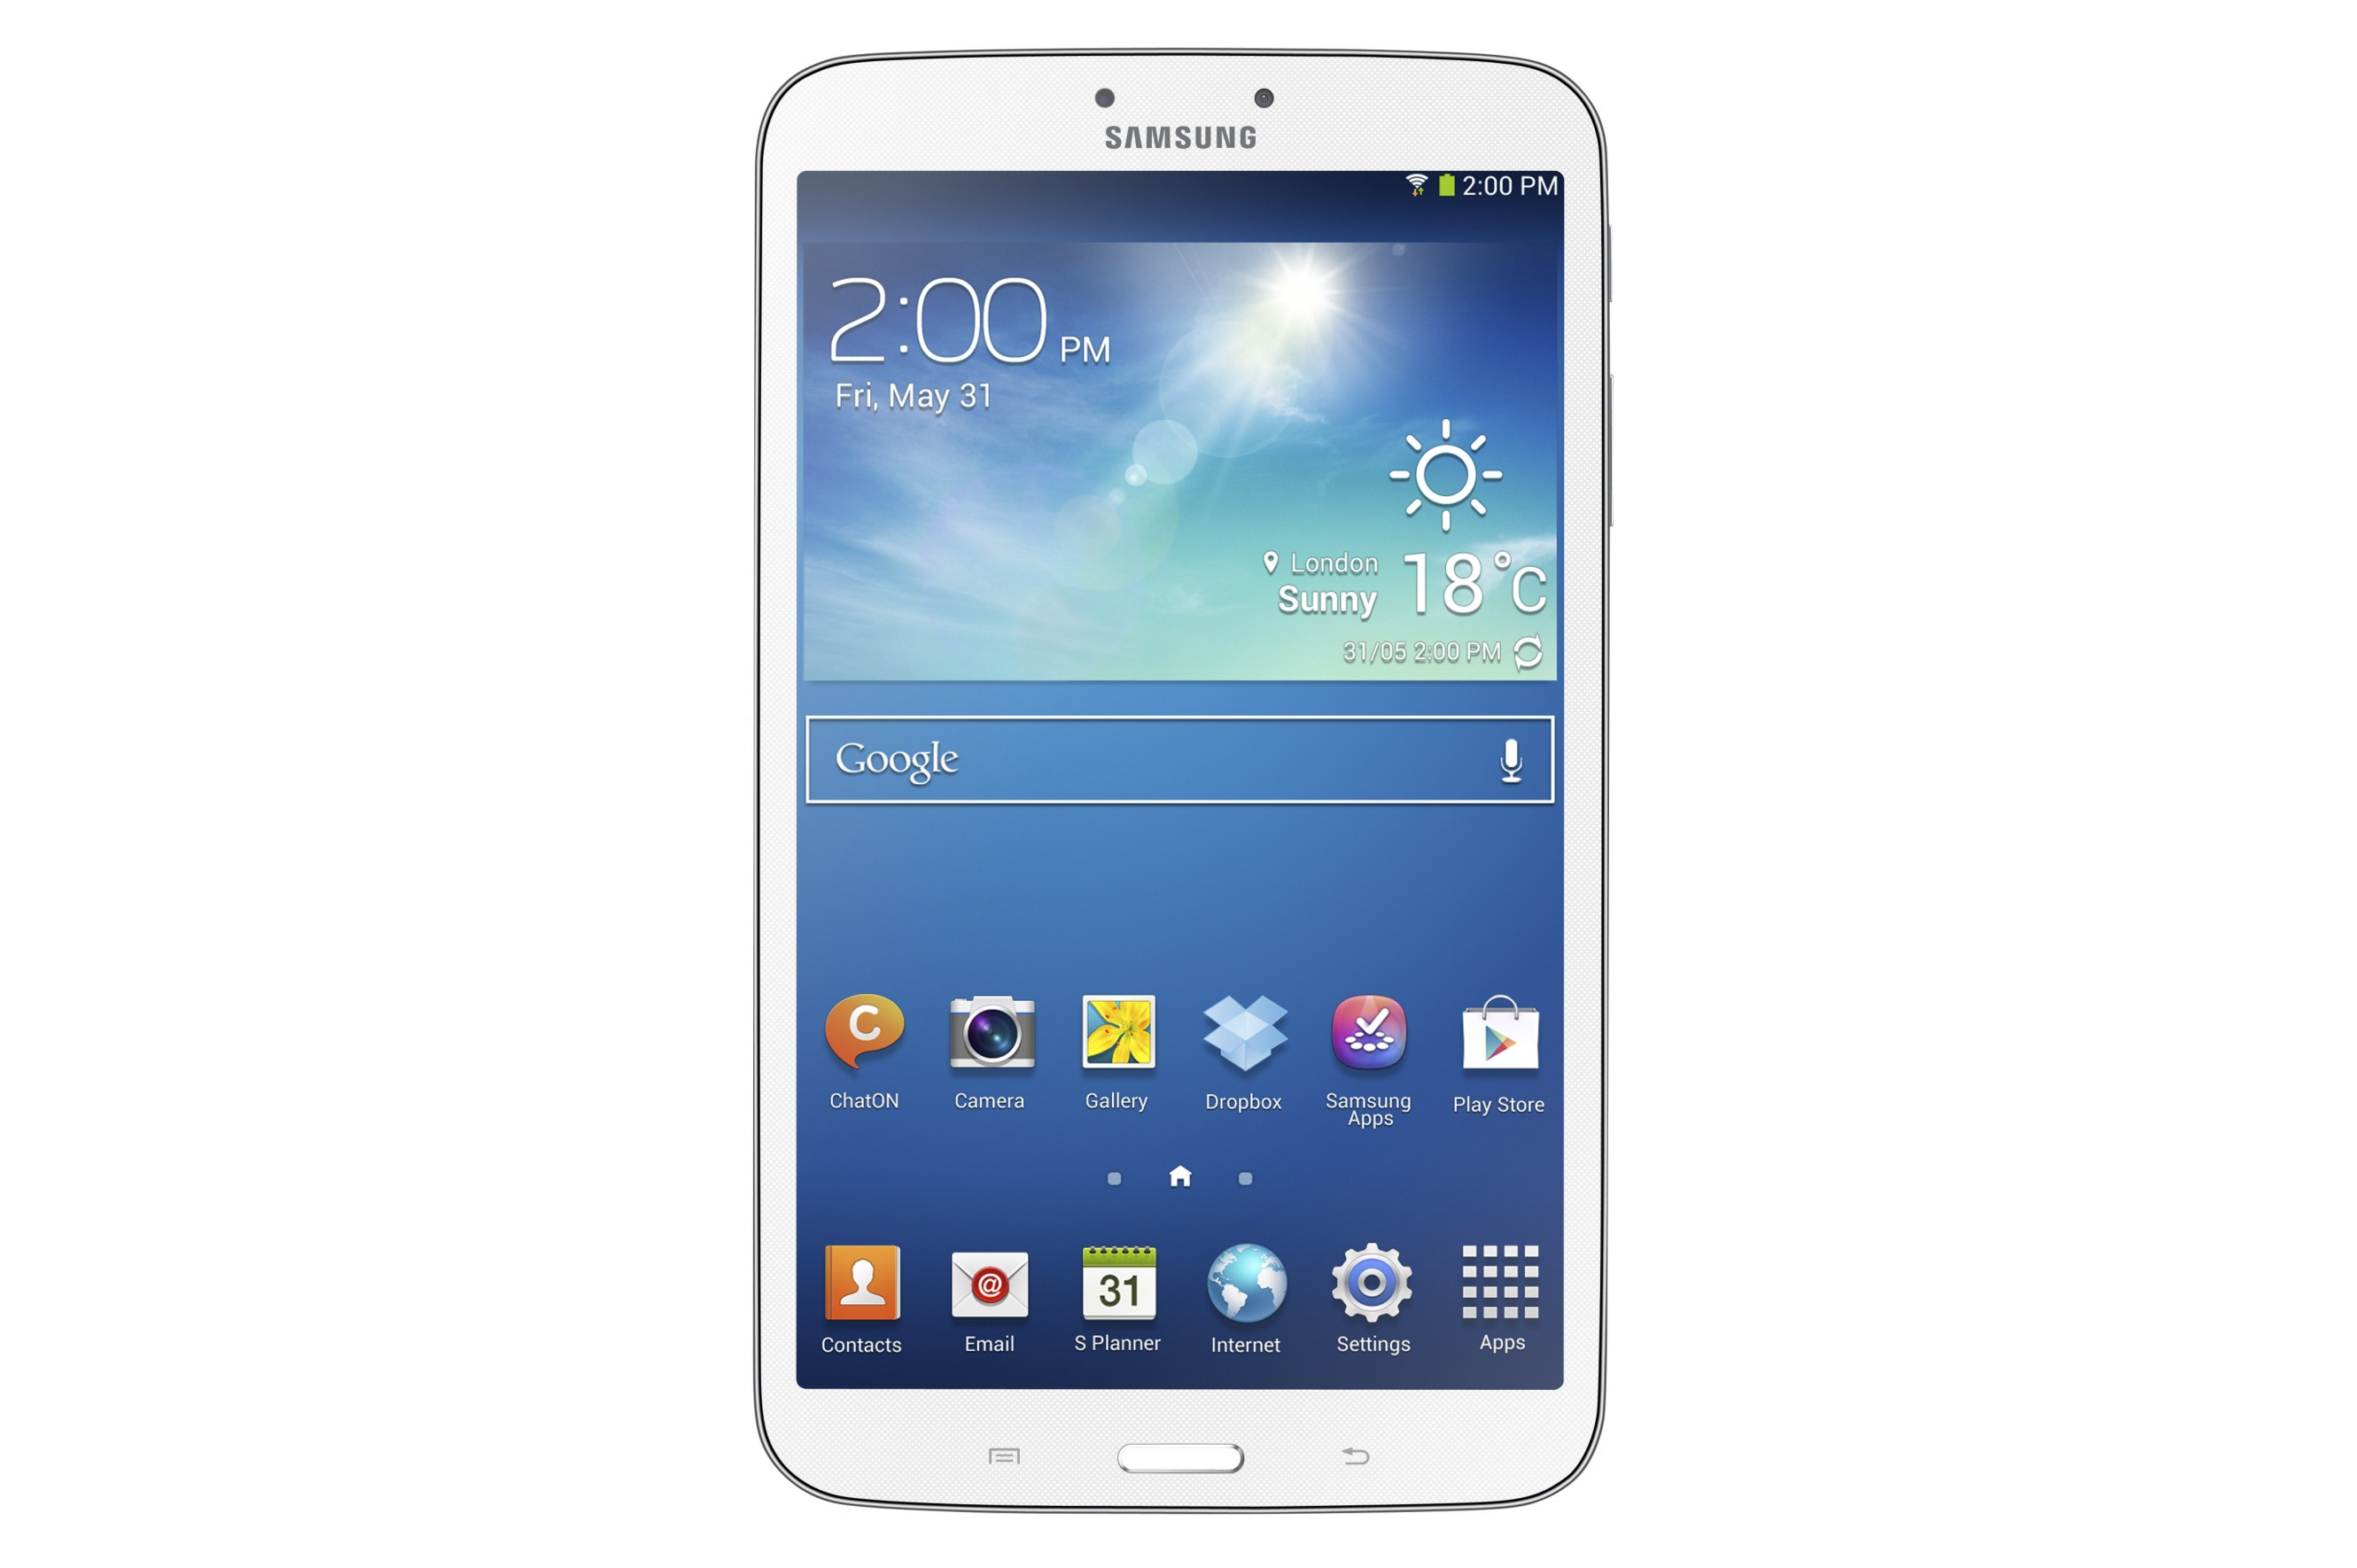 Samsung announces the galaxy tab 3 in 8 inch and 10 1 inch flavors